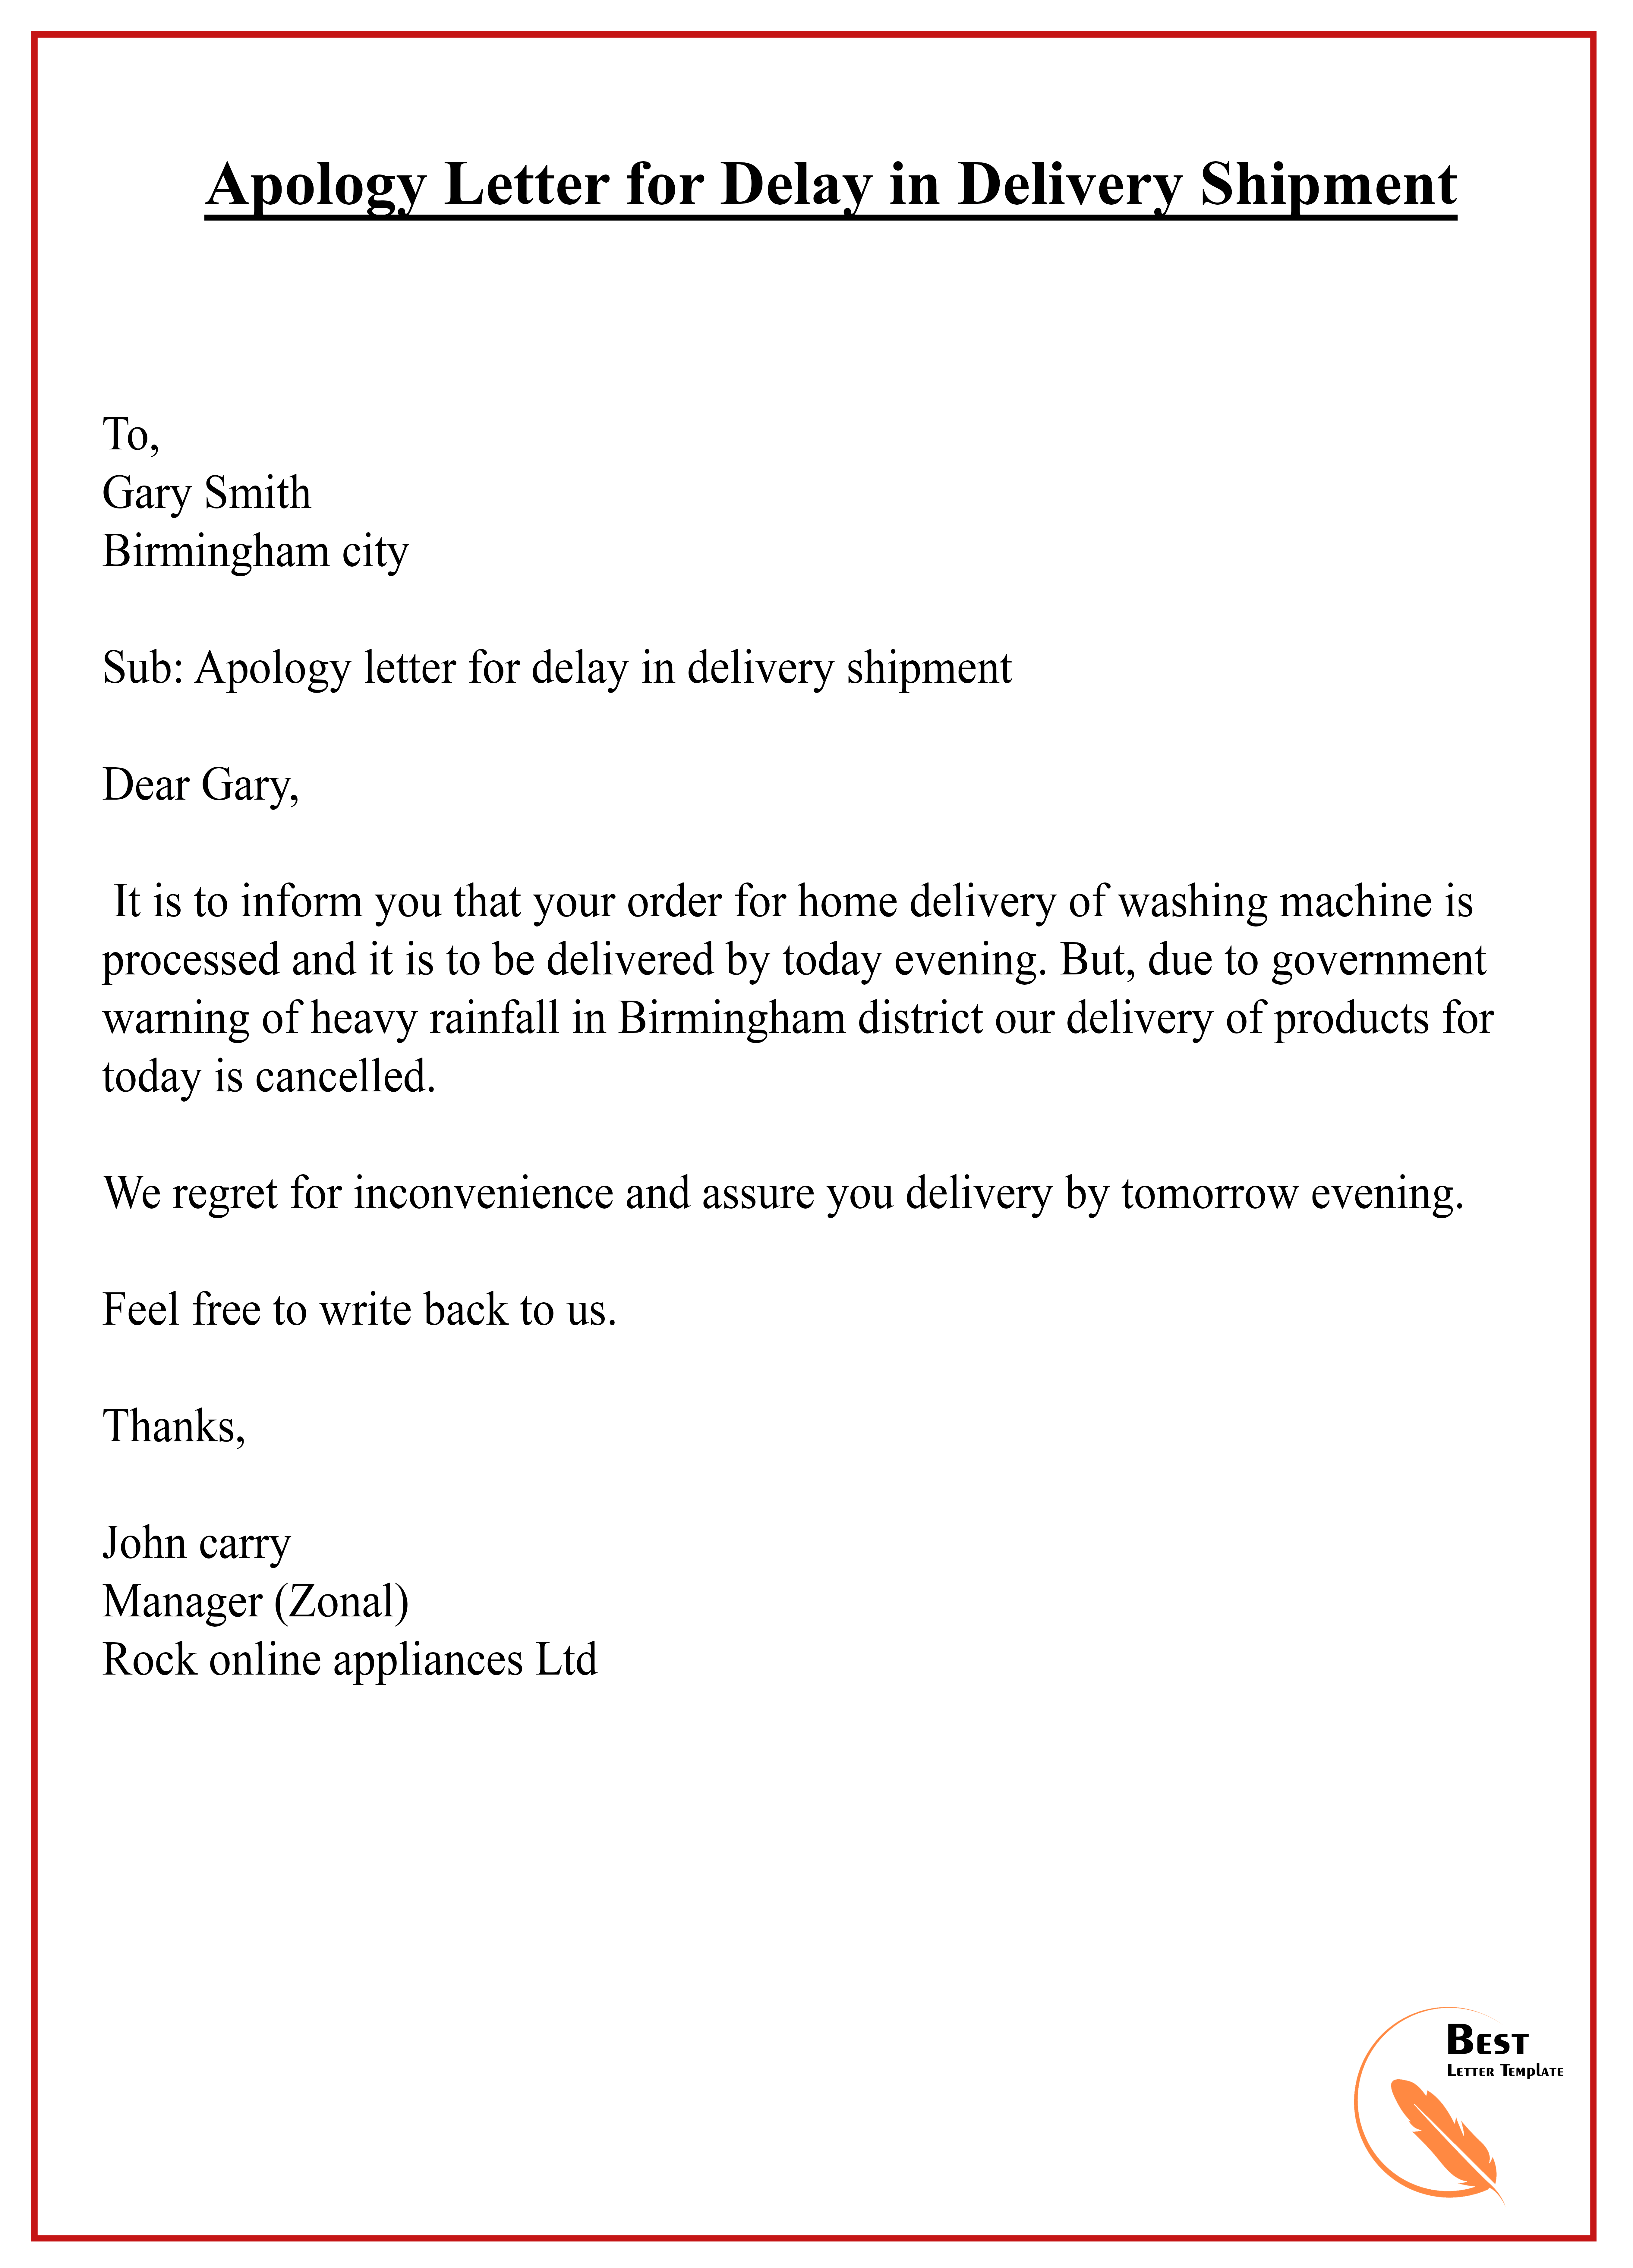 apology letter for delay in delivery